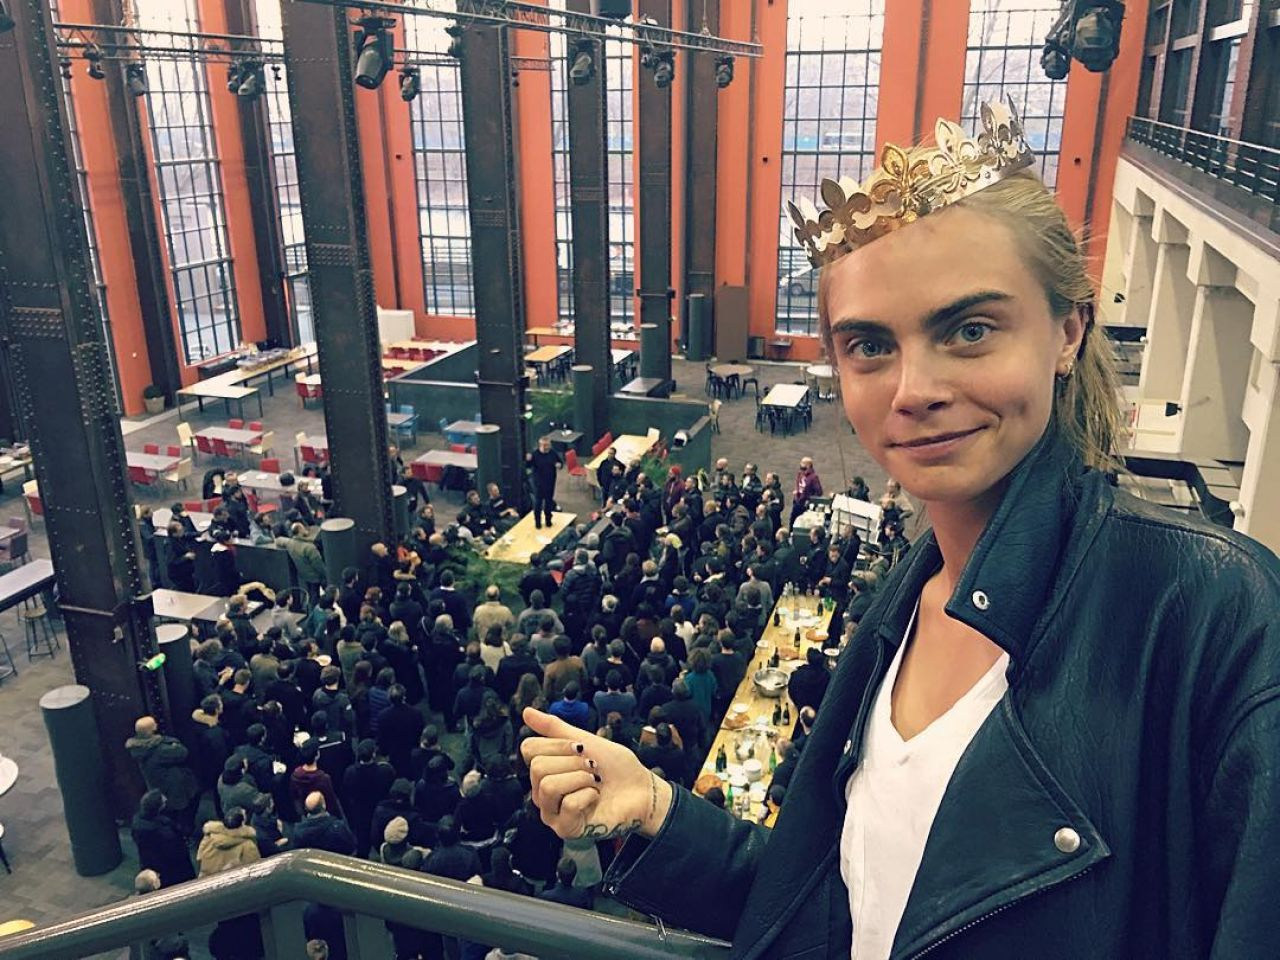 Twitter Cara Delevingne nudes (26 foto and video), Ass, Paparazzi, Boobs, cleavage 2017